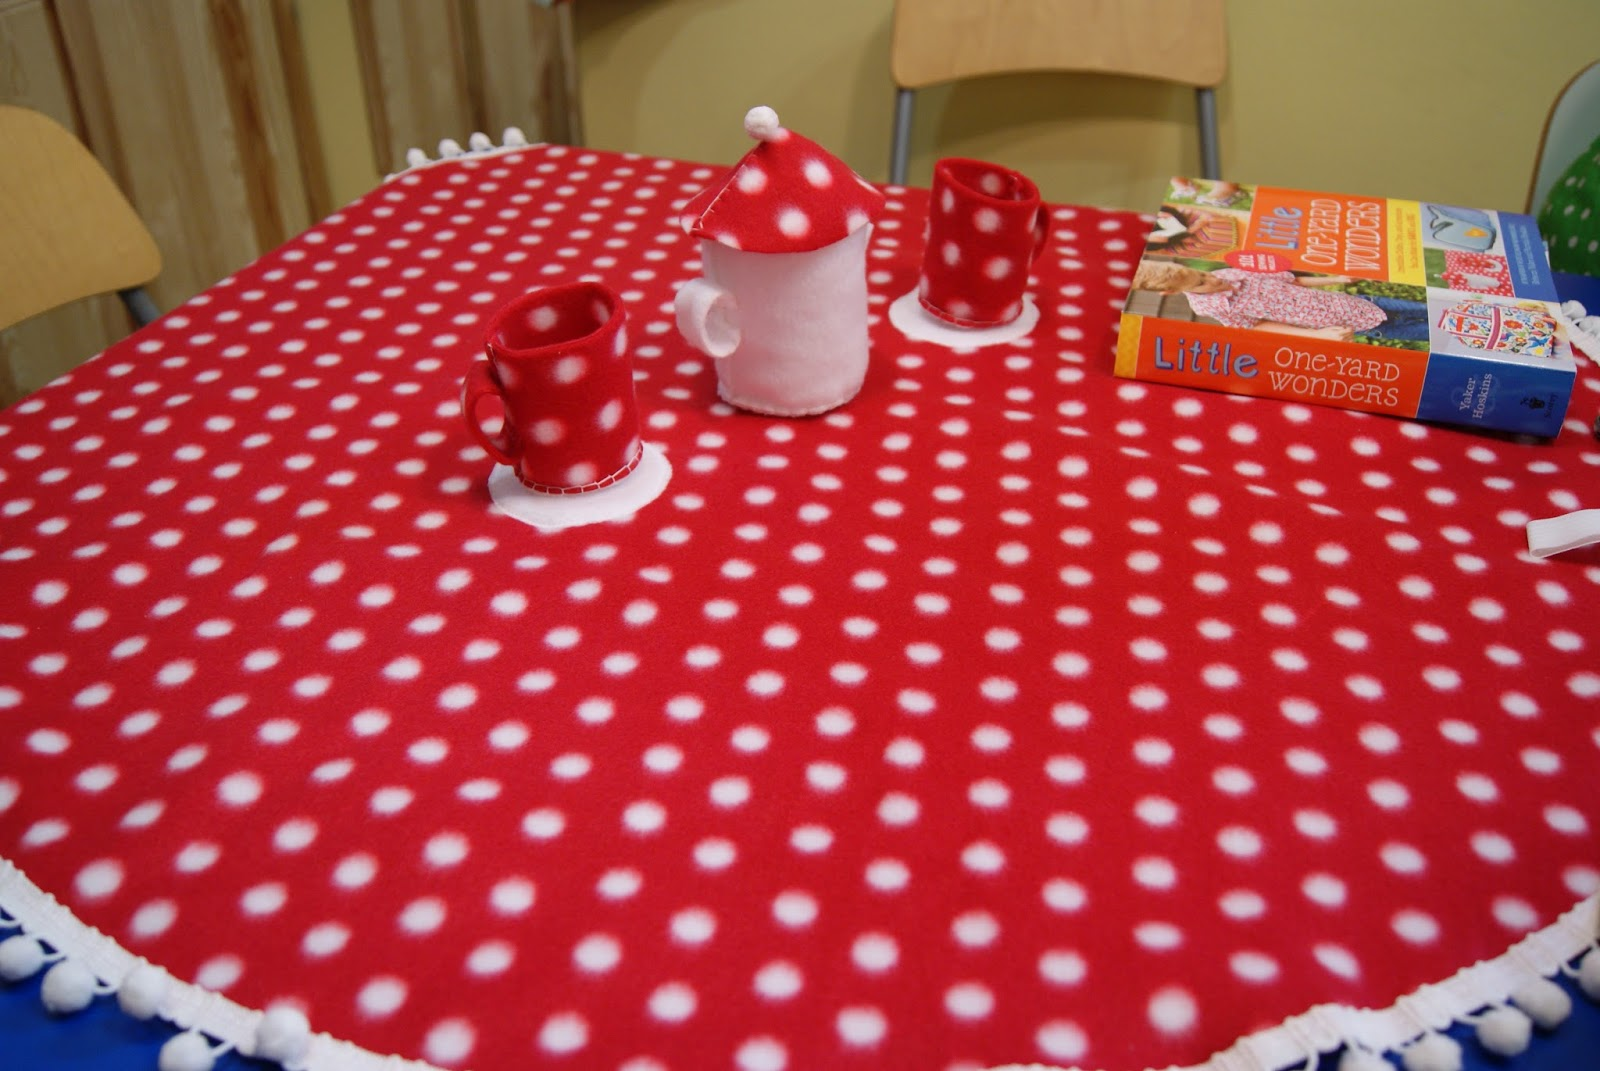 Mushroom Tea Party, Little One-Yard Wonders book release party